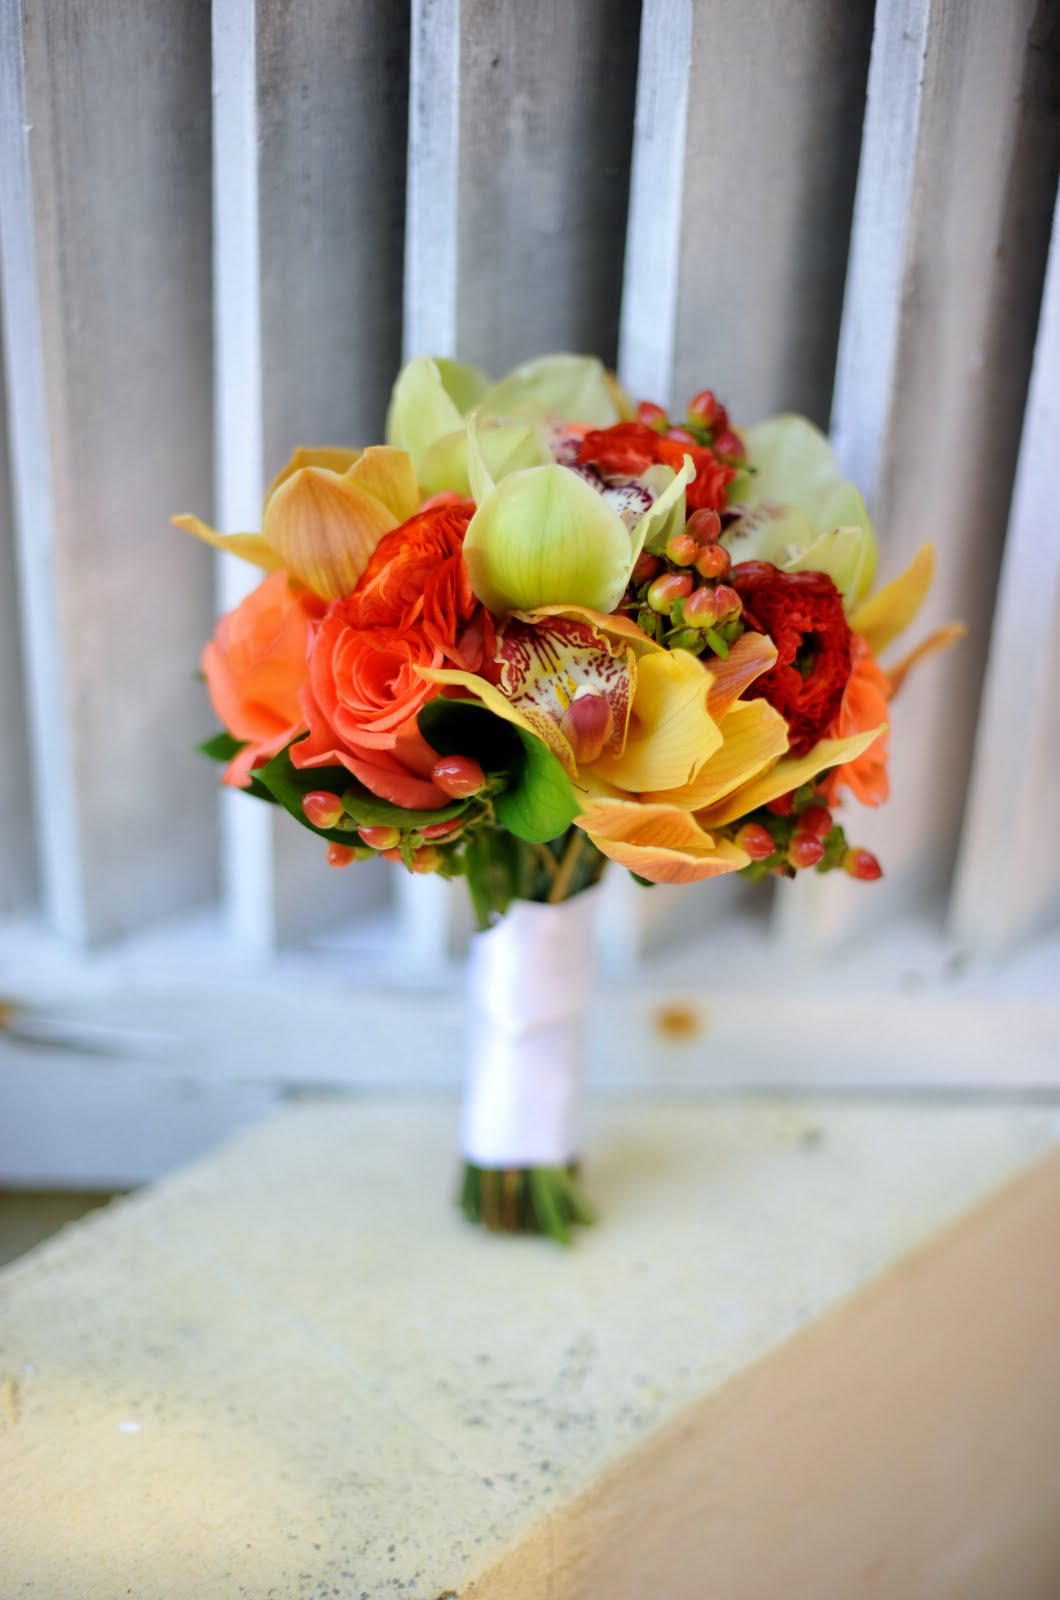 Your bridal bouquet island bliss weddings and at no additional cost you have to be flexible with the type of flowers and you can get a really gorgeous bouquet do not fret our florist never izmirmasajfo Choice Image